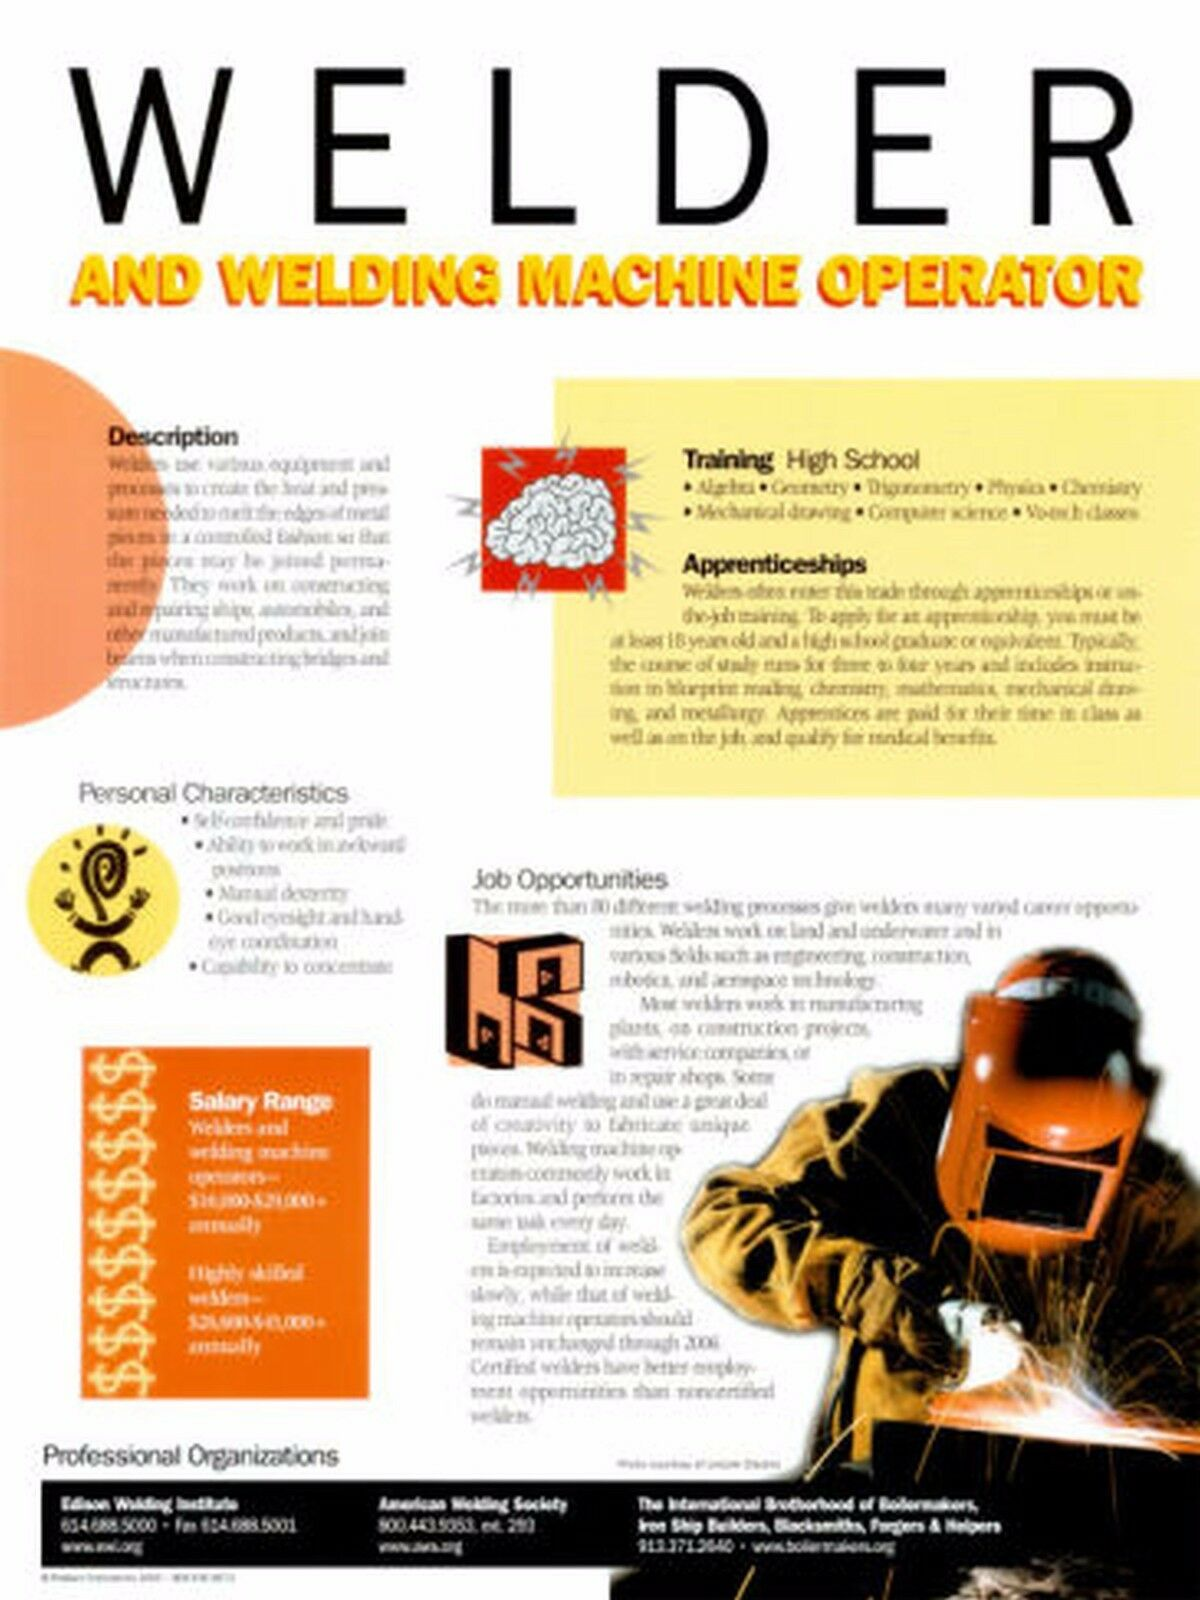 safety precautions in welding operations More about safety precautions in welding operations industrial hygiene in the welding workshop 643 words | 3 pages mig welding 962 words | 4 pages safety precautions in bench fitting shop 2141 words | 9 pages process safety in oil and gas operations- past, present and future direction 2584 words | 11 pages history of welding: manual welding vs.